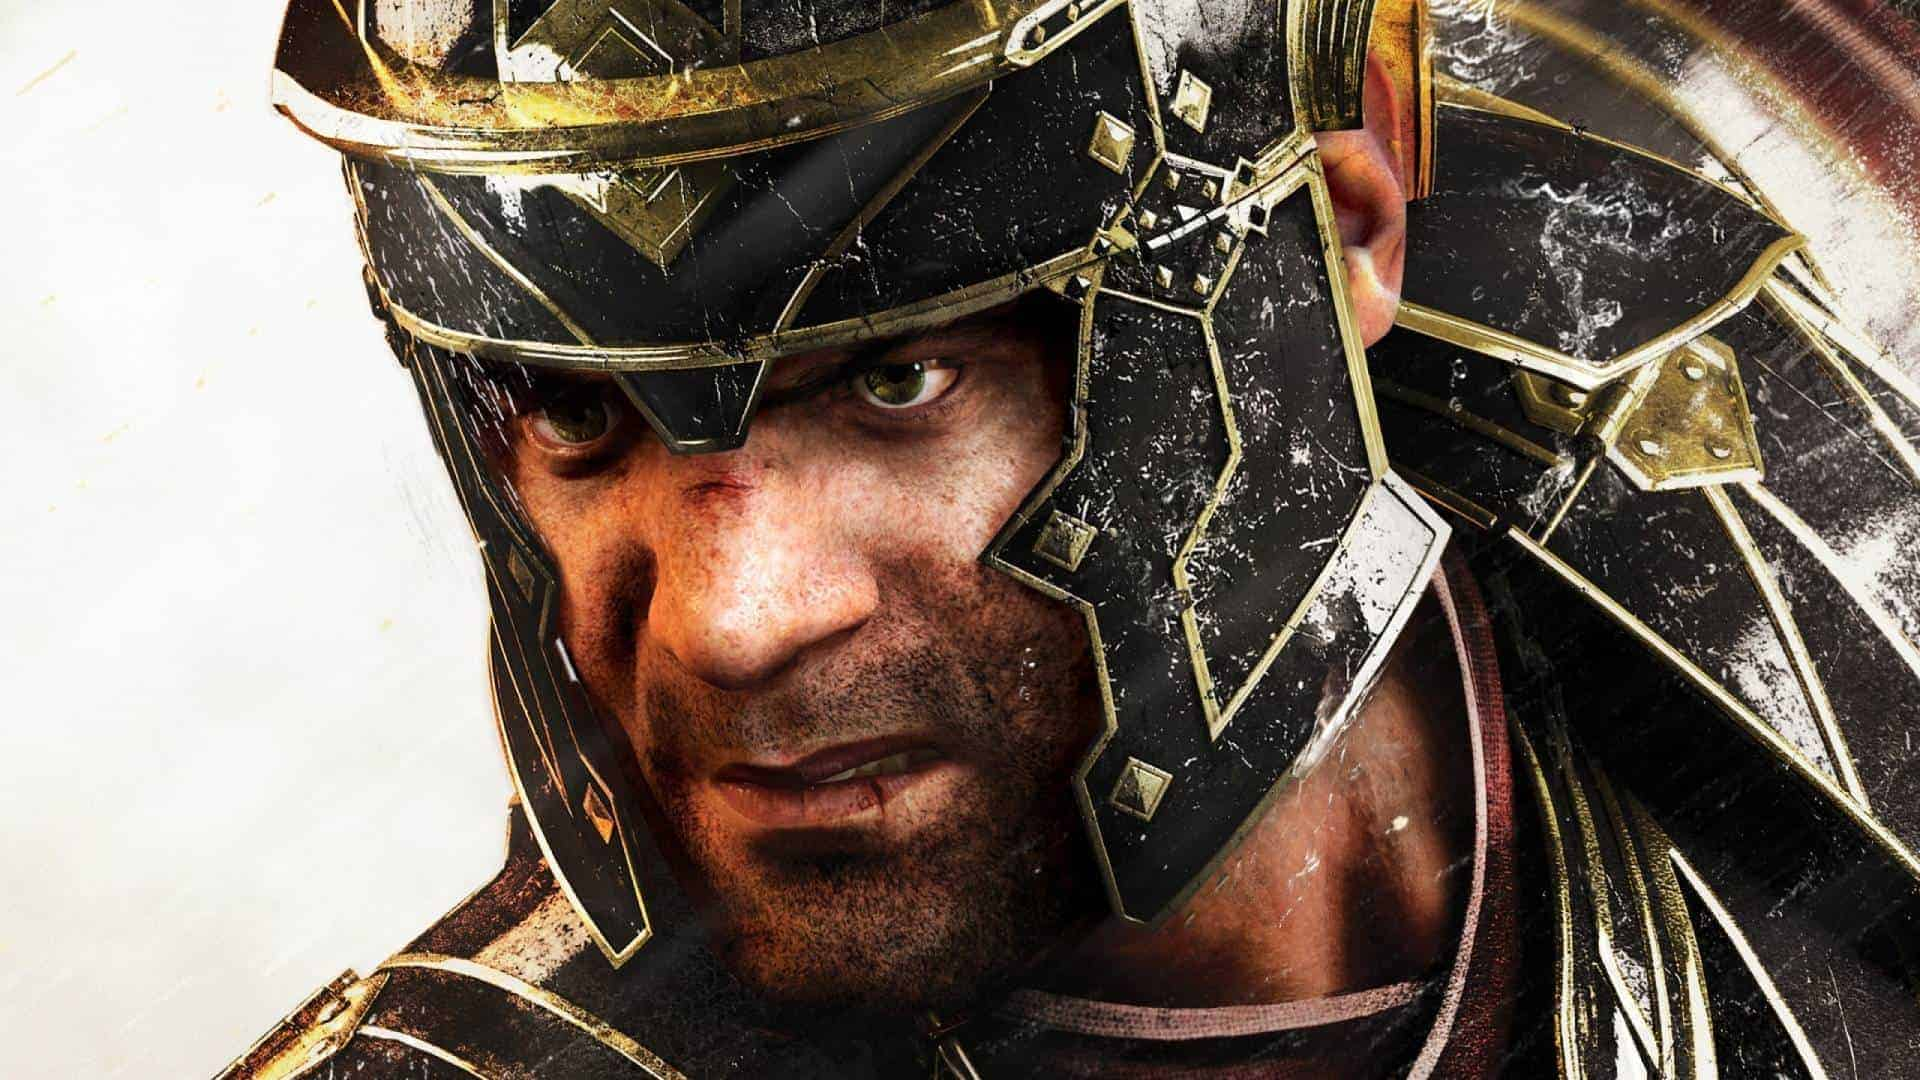 ryse_son_of_rome_wallpaper_1920x1080 _ultimate_gaming_paradise